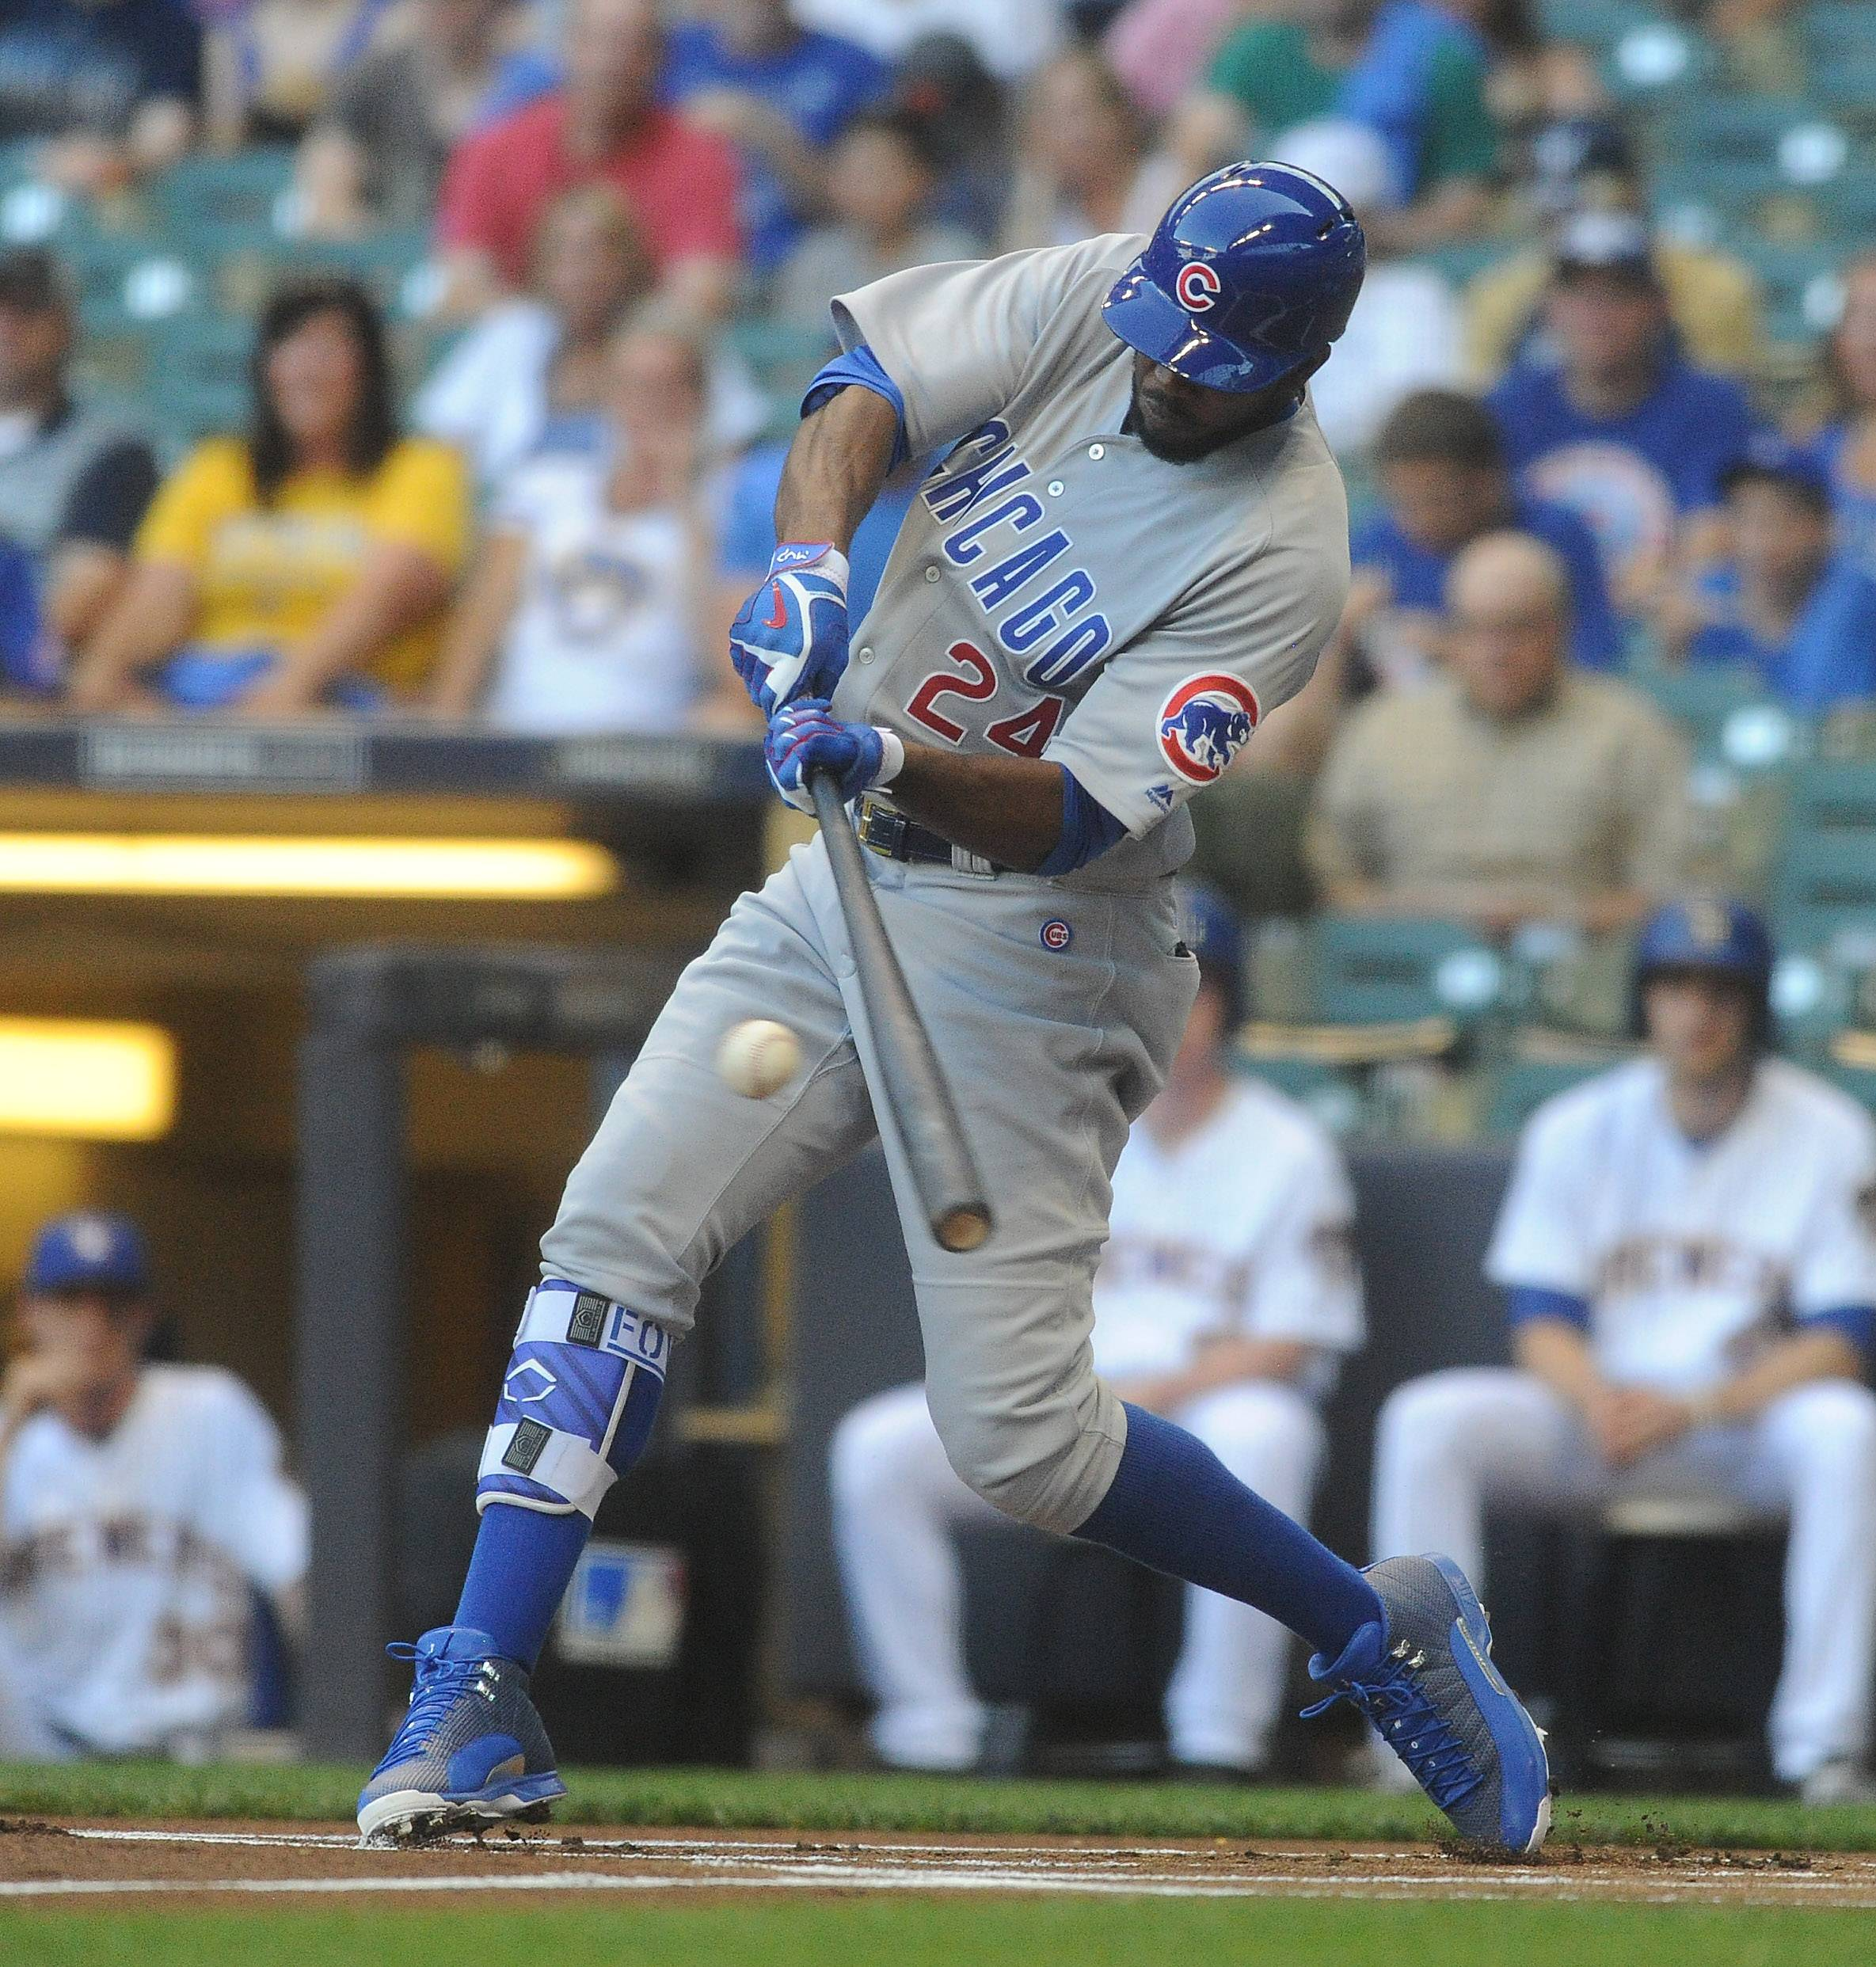 Mark Welsh/mwelsh@dailyherald.com Dexter Fowler made it a smashing return, hitting a leadoff homer and adding a 2-run double as the Cubs beat the Milwaukee Brewers 5-2 at Miller Park.